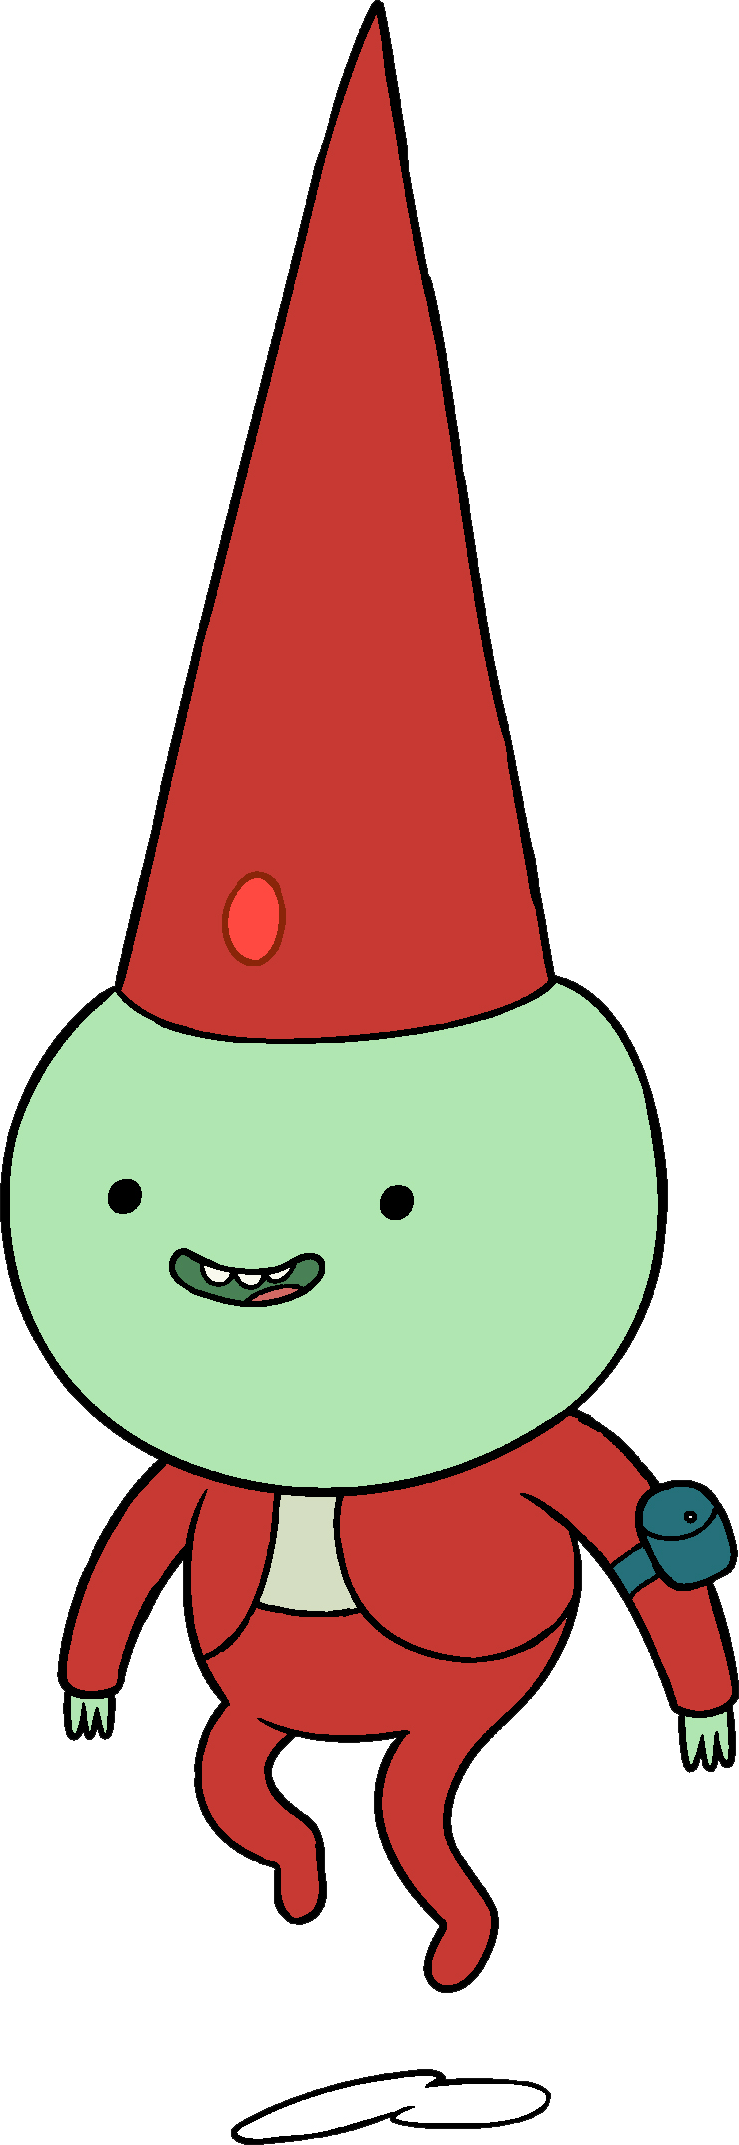 image gnome 1 good pose png adventure time wiki fandom